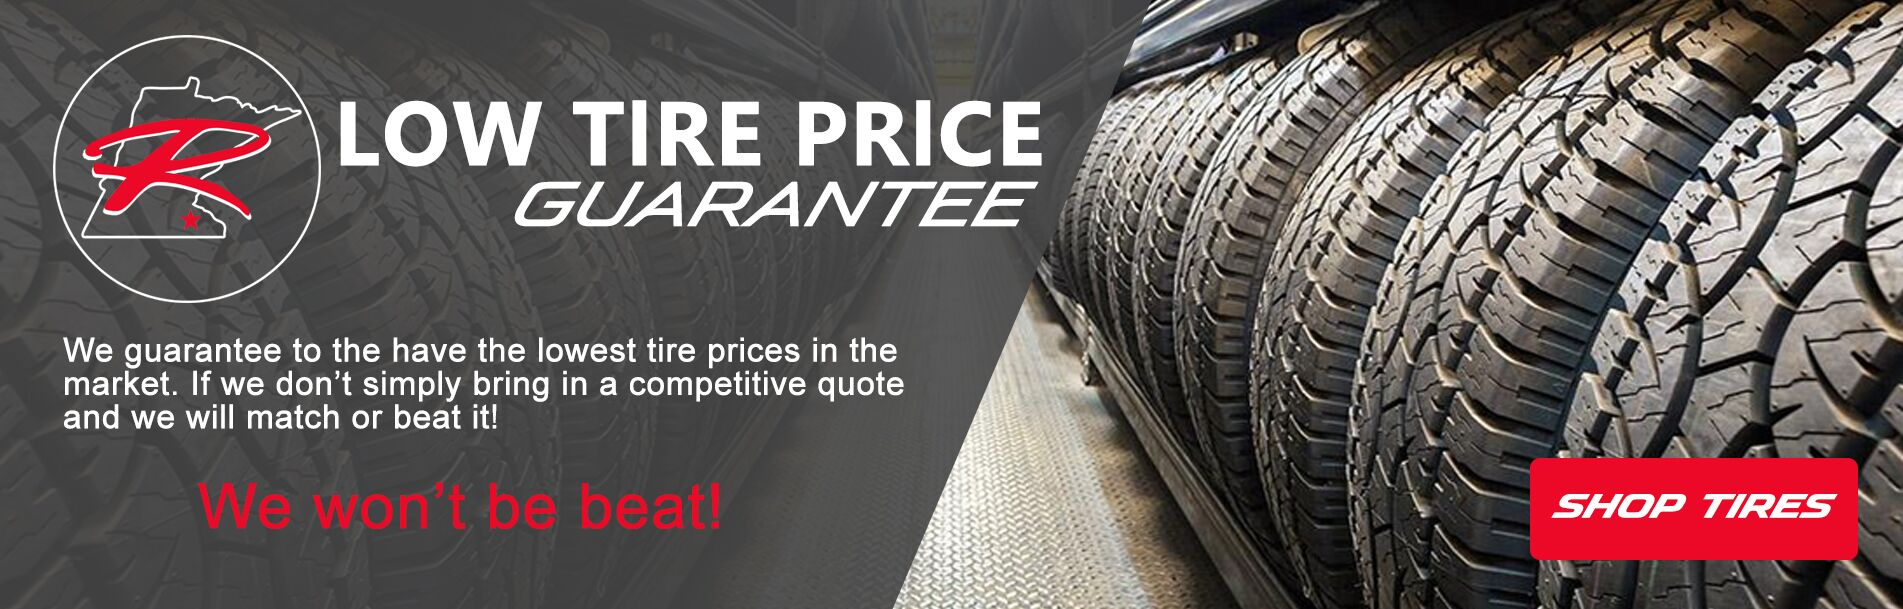 Low Tire Price Guarantee at Rochester Mazda